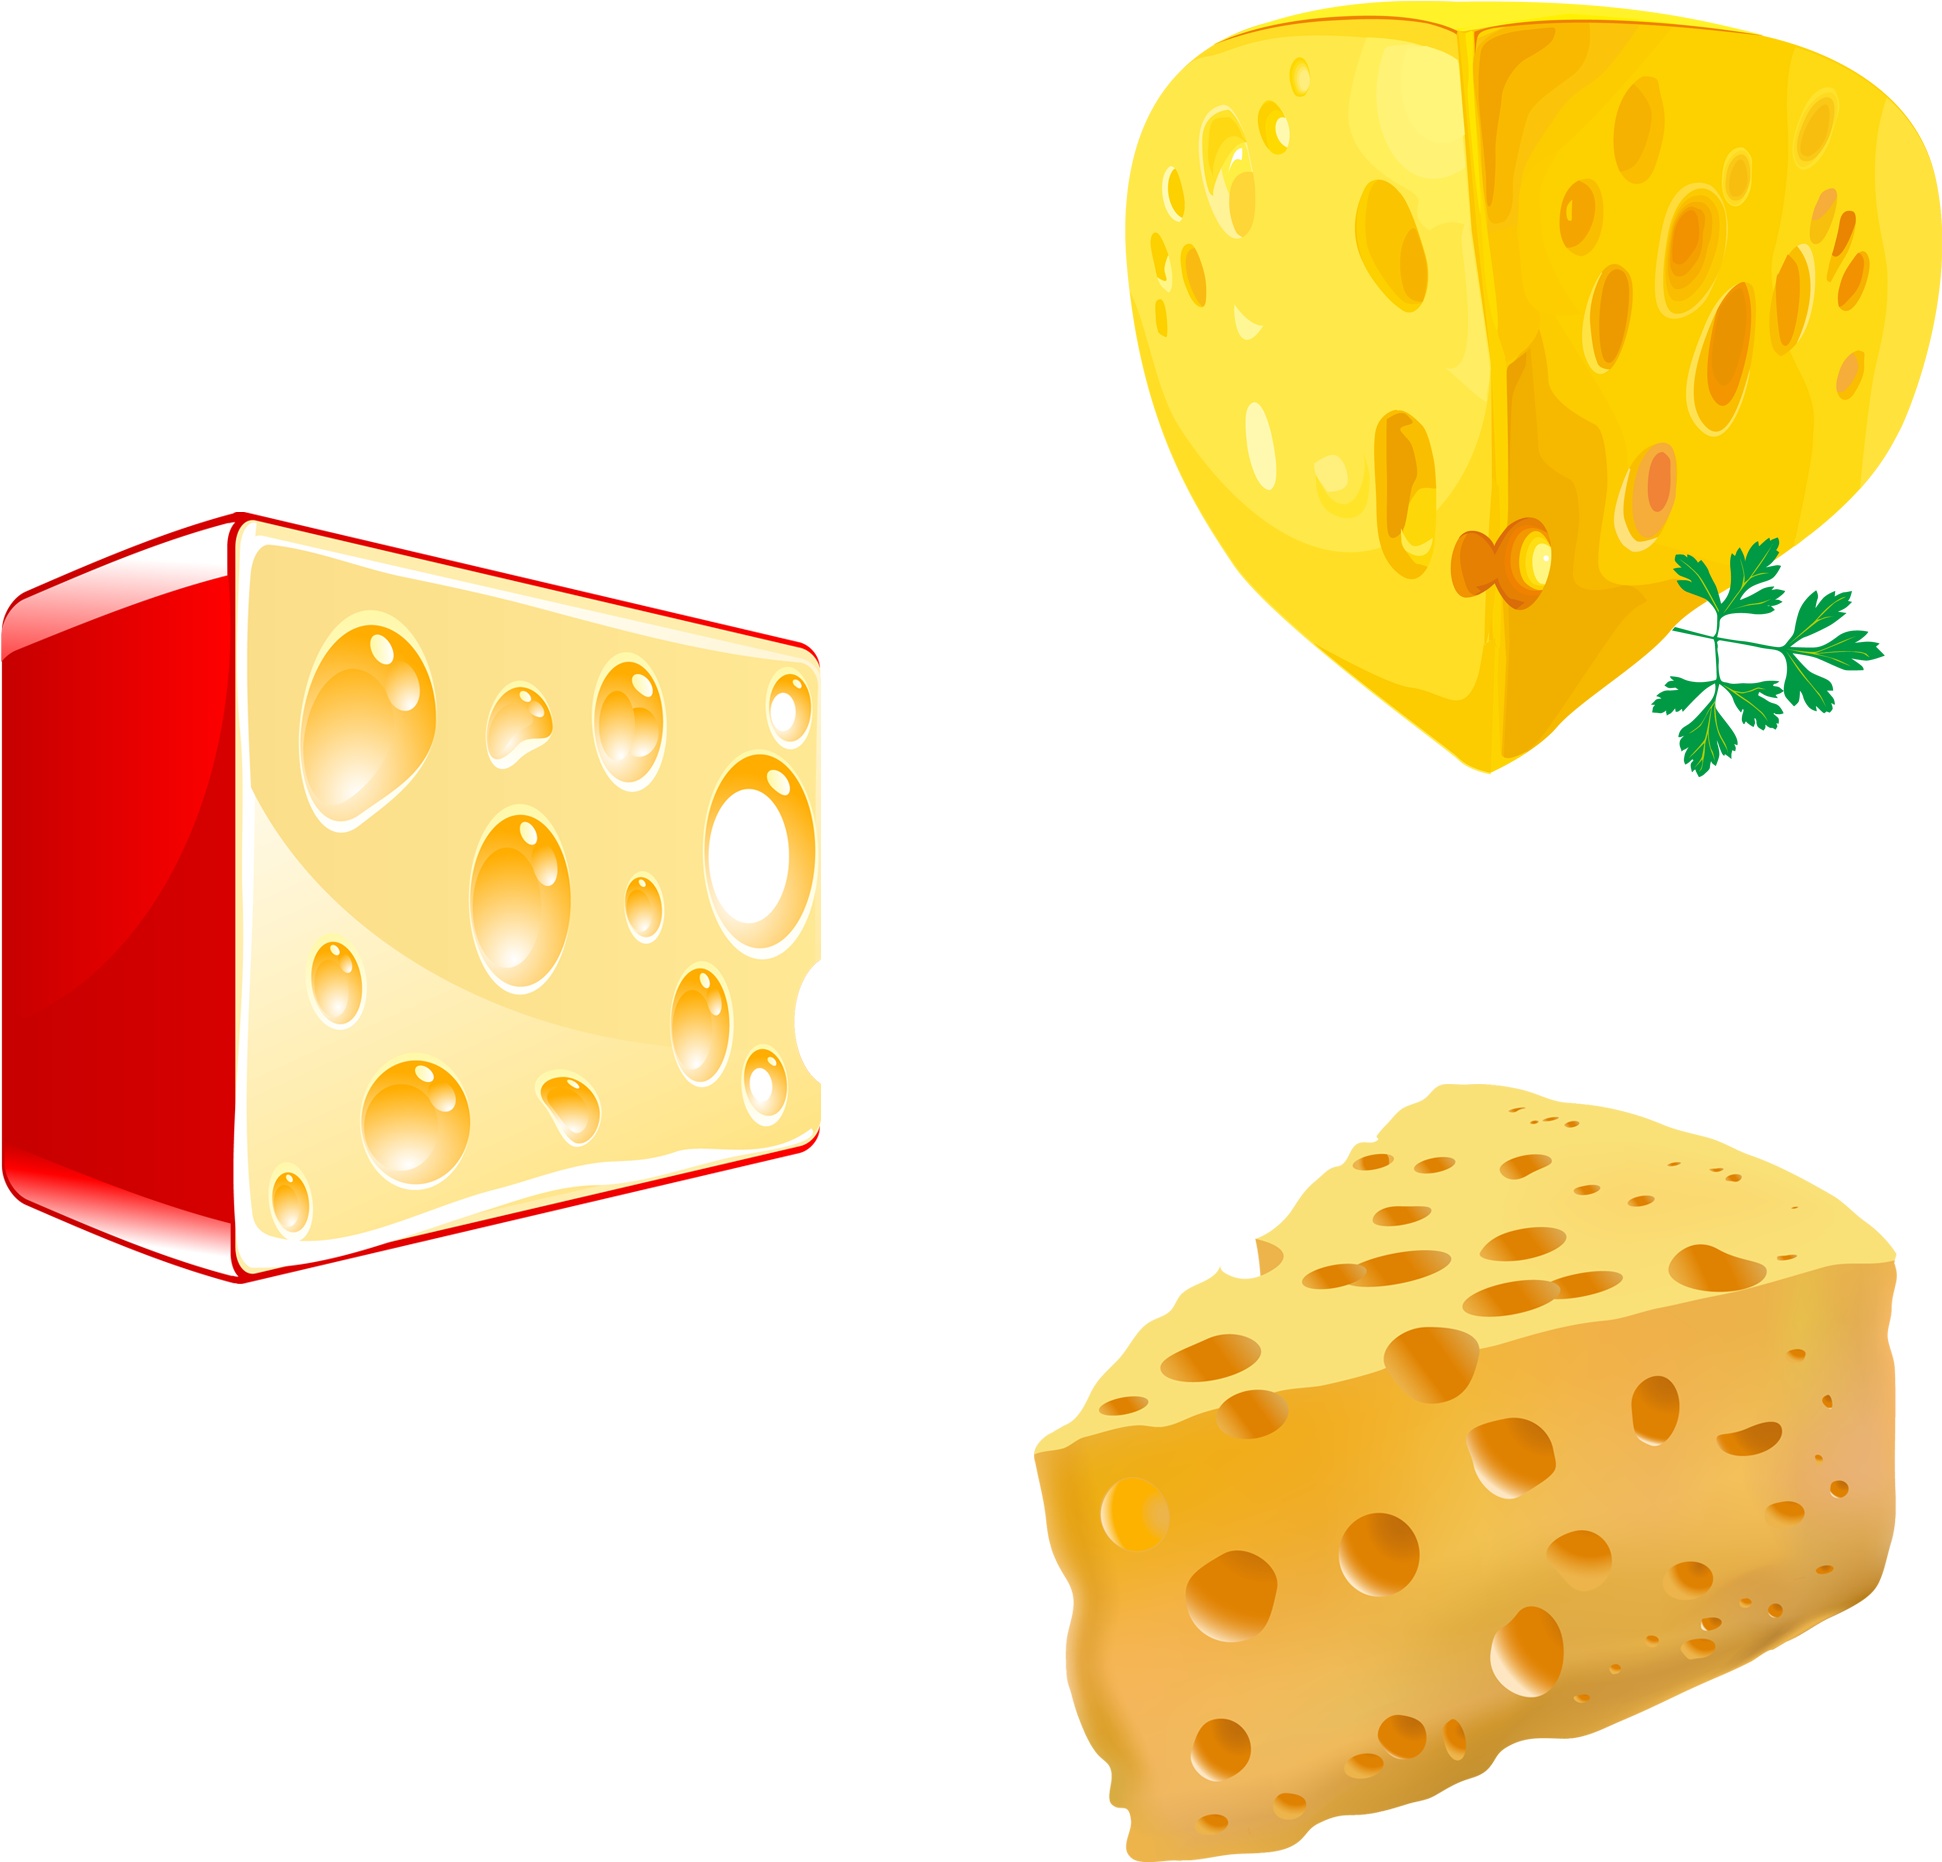 Yellow,Clip art,Cheese,Processed cheese,Food,Dairy,Illustration.